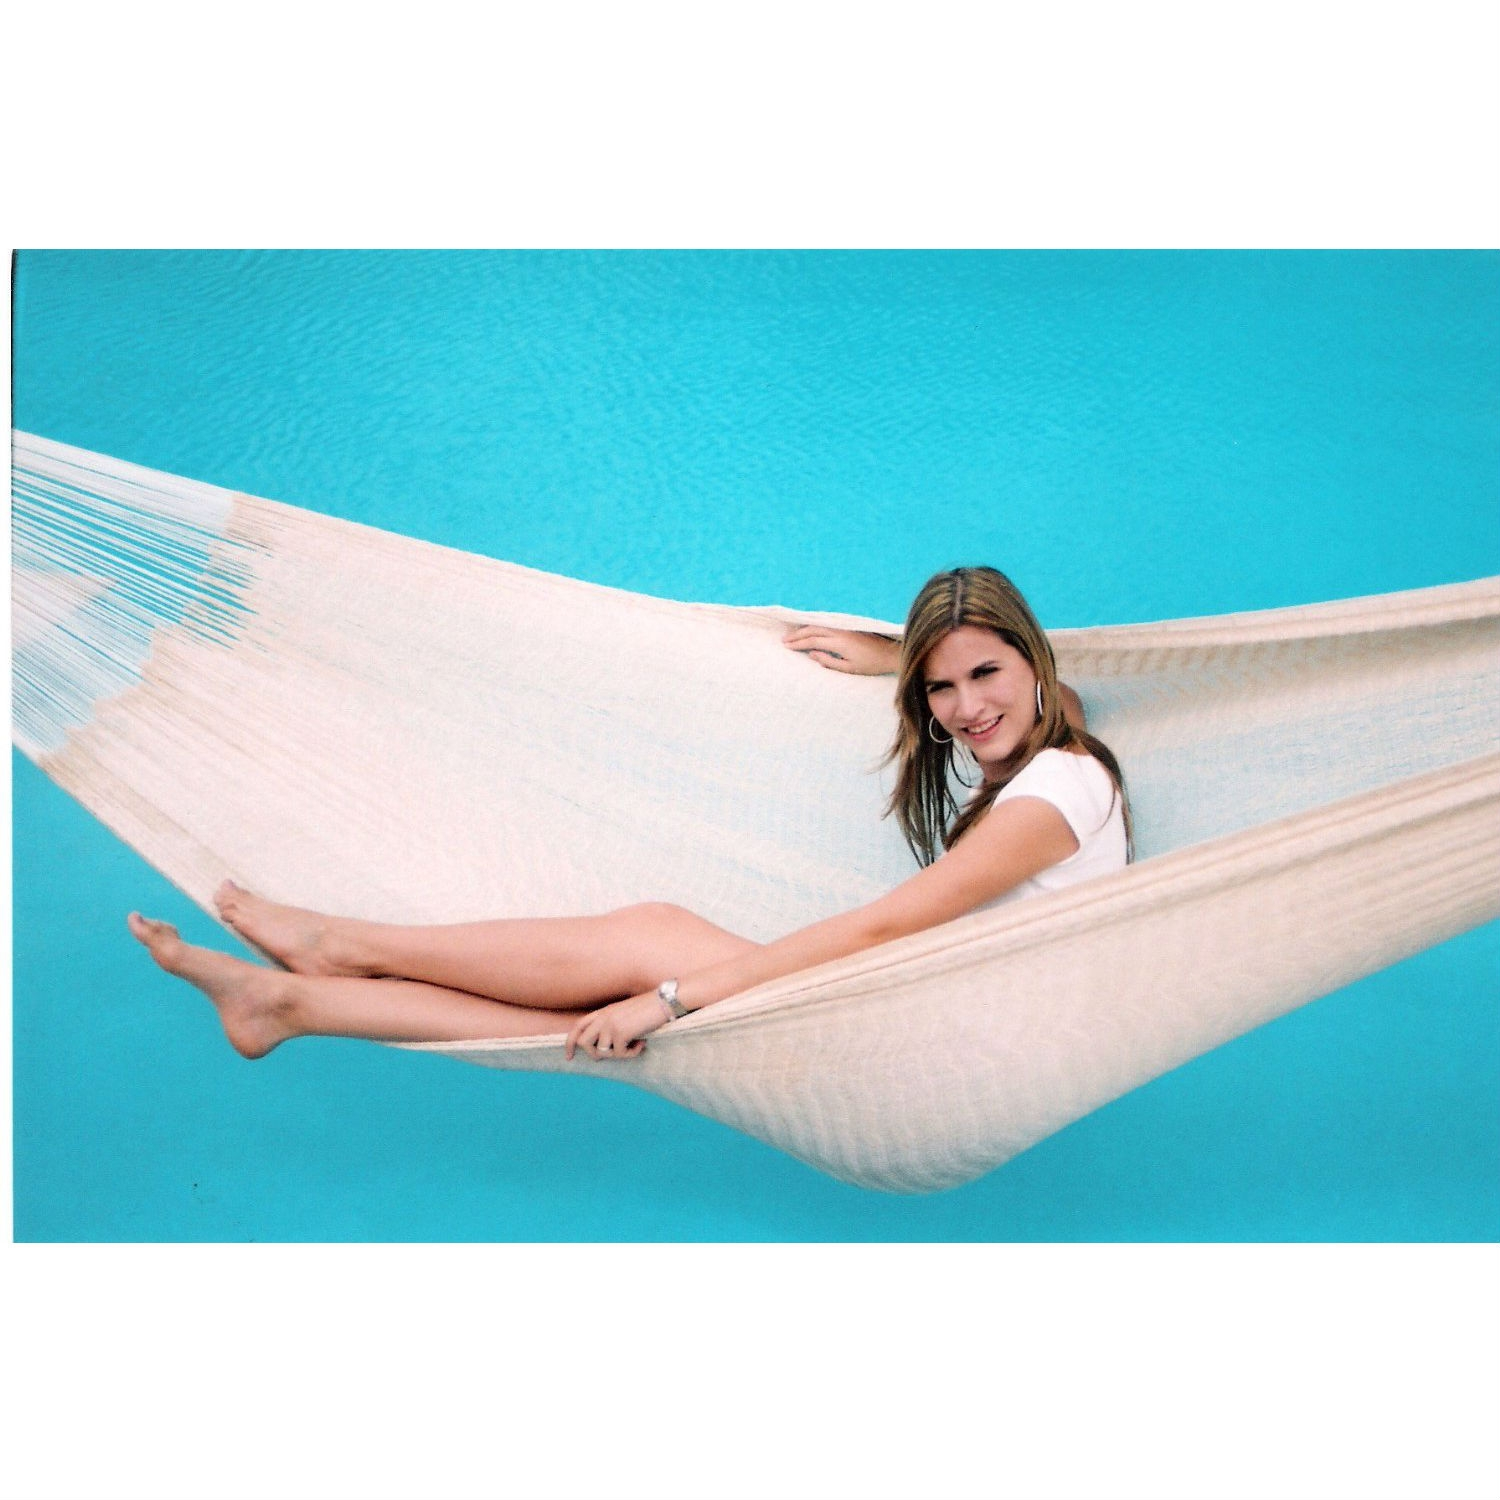 13-FT Long Handmade Yucatan Style Hammock in Natural Beige Color, HRYN6396 :  This 13-FT Long Handmade Yucatan Style Hammock in Natural Beige Color would be a great addition to your home. Our artisan-crafted hammock envelops your body for ultimate comfort. Lay lengthwise or horizontally for your desired level of comfort and support. Even makes a great alternative to traditional mattresses! Our Rada Hammocks are hand-woven for years of durability; Beautiful natural beige color. Holds up to 550lbs. 13ft Long; Great for naps, siestas or even all night.